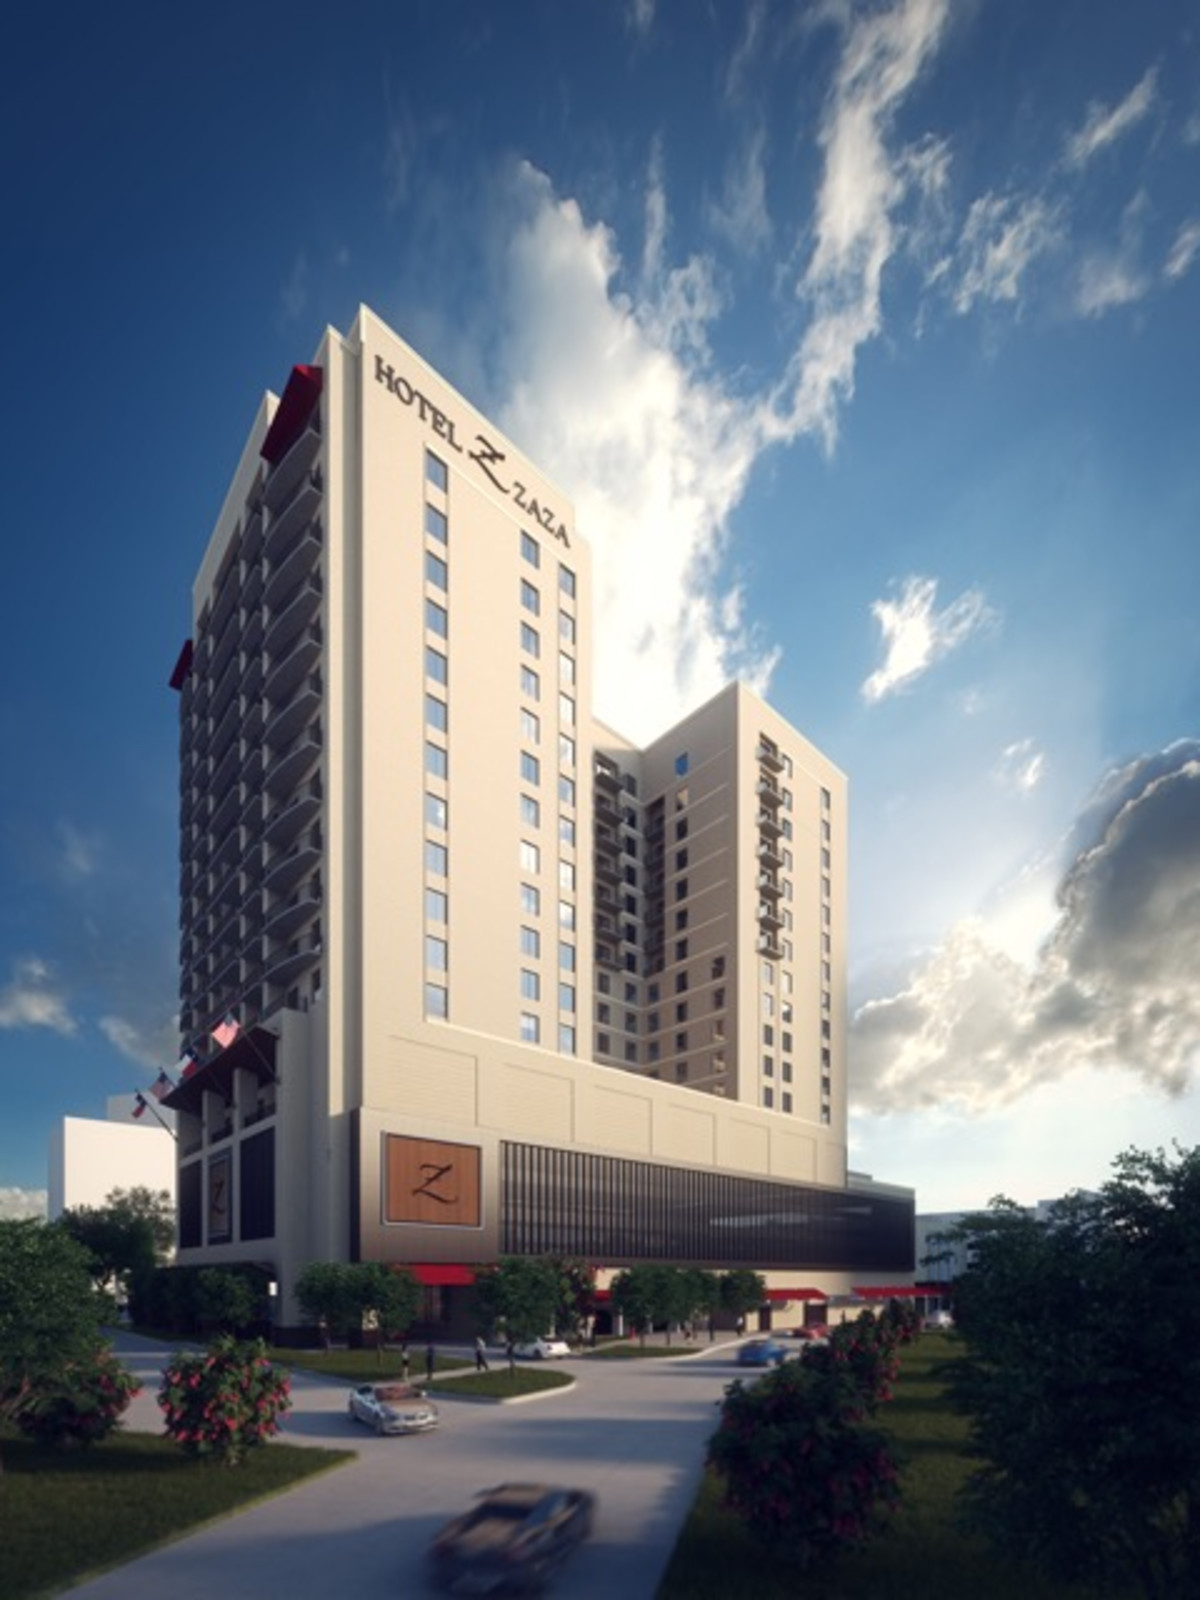 News, Shelby, Metronational Hotel ZaZa, Oct. 2015